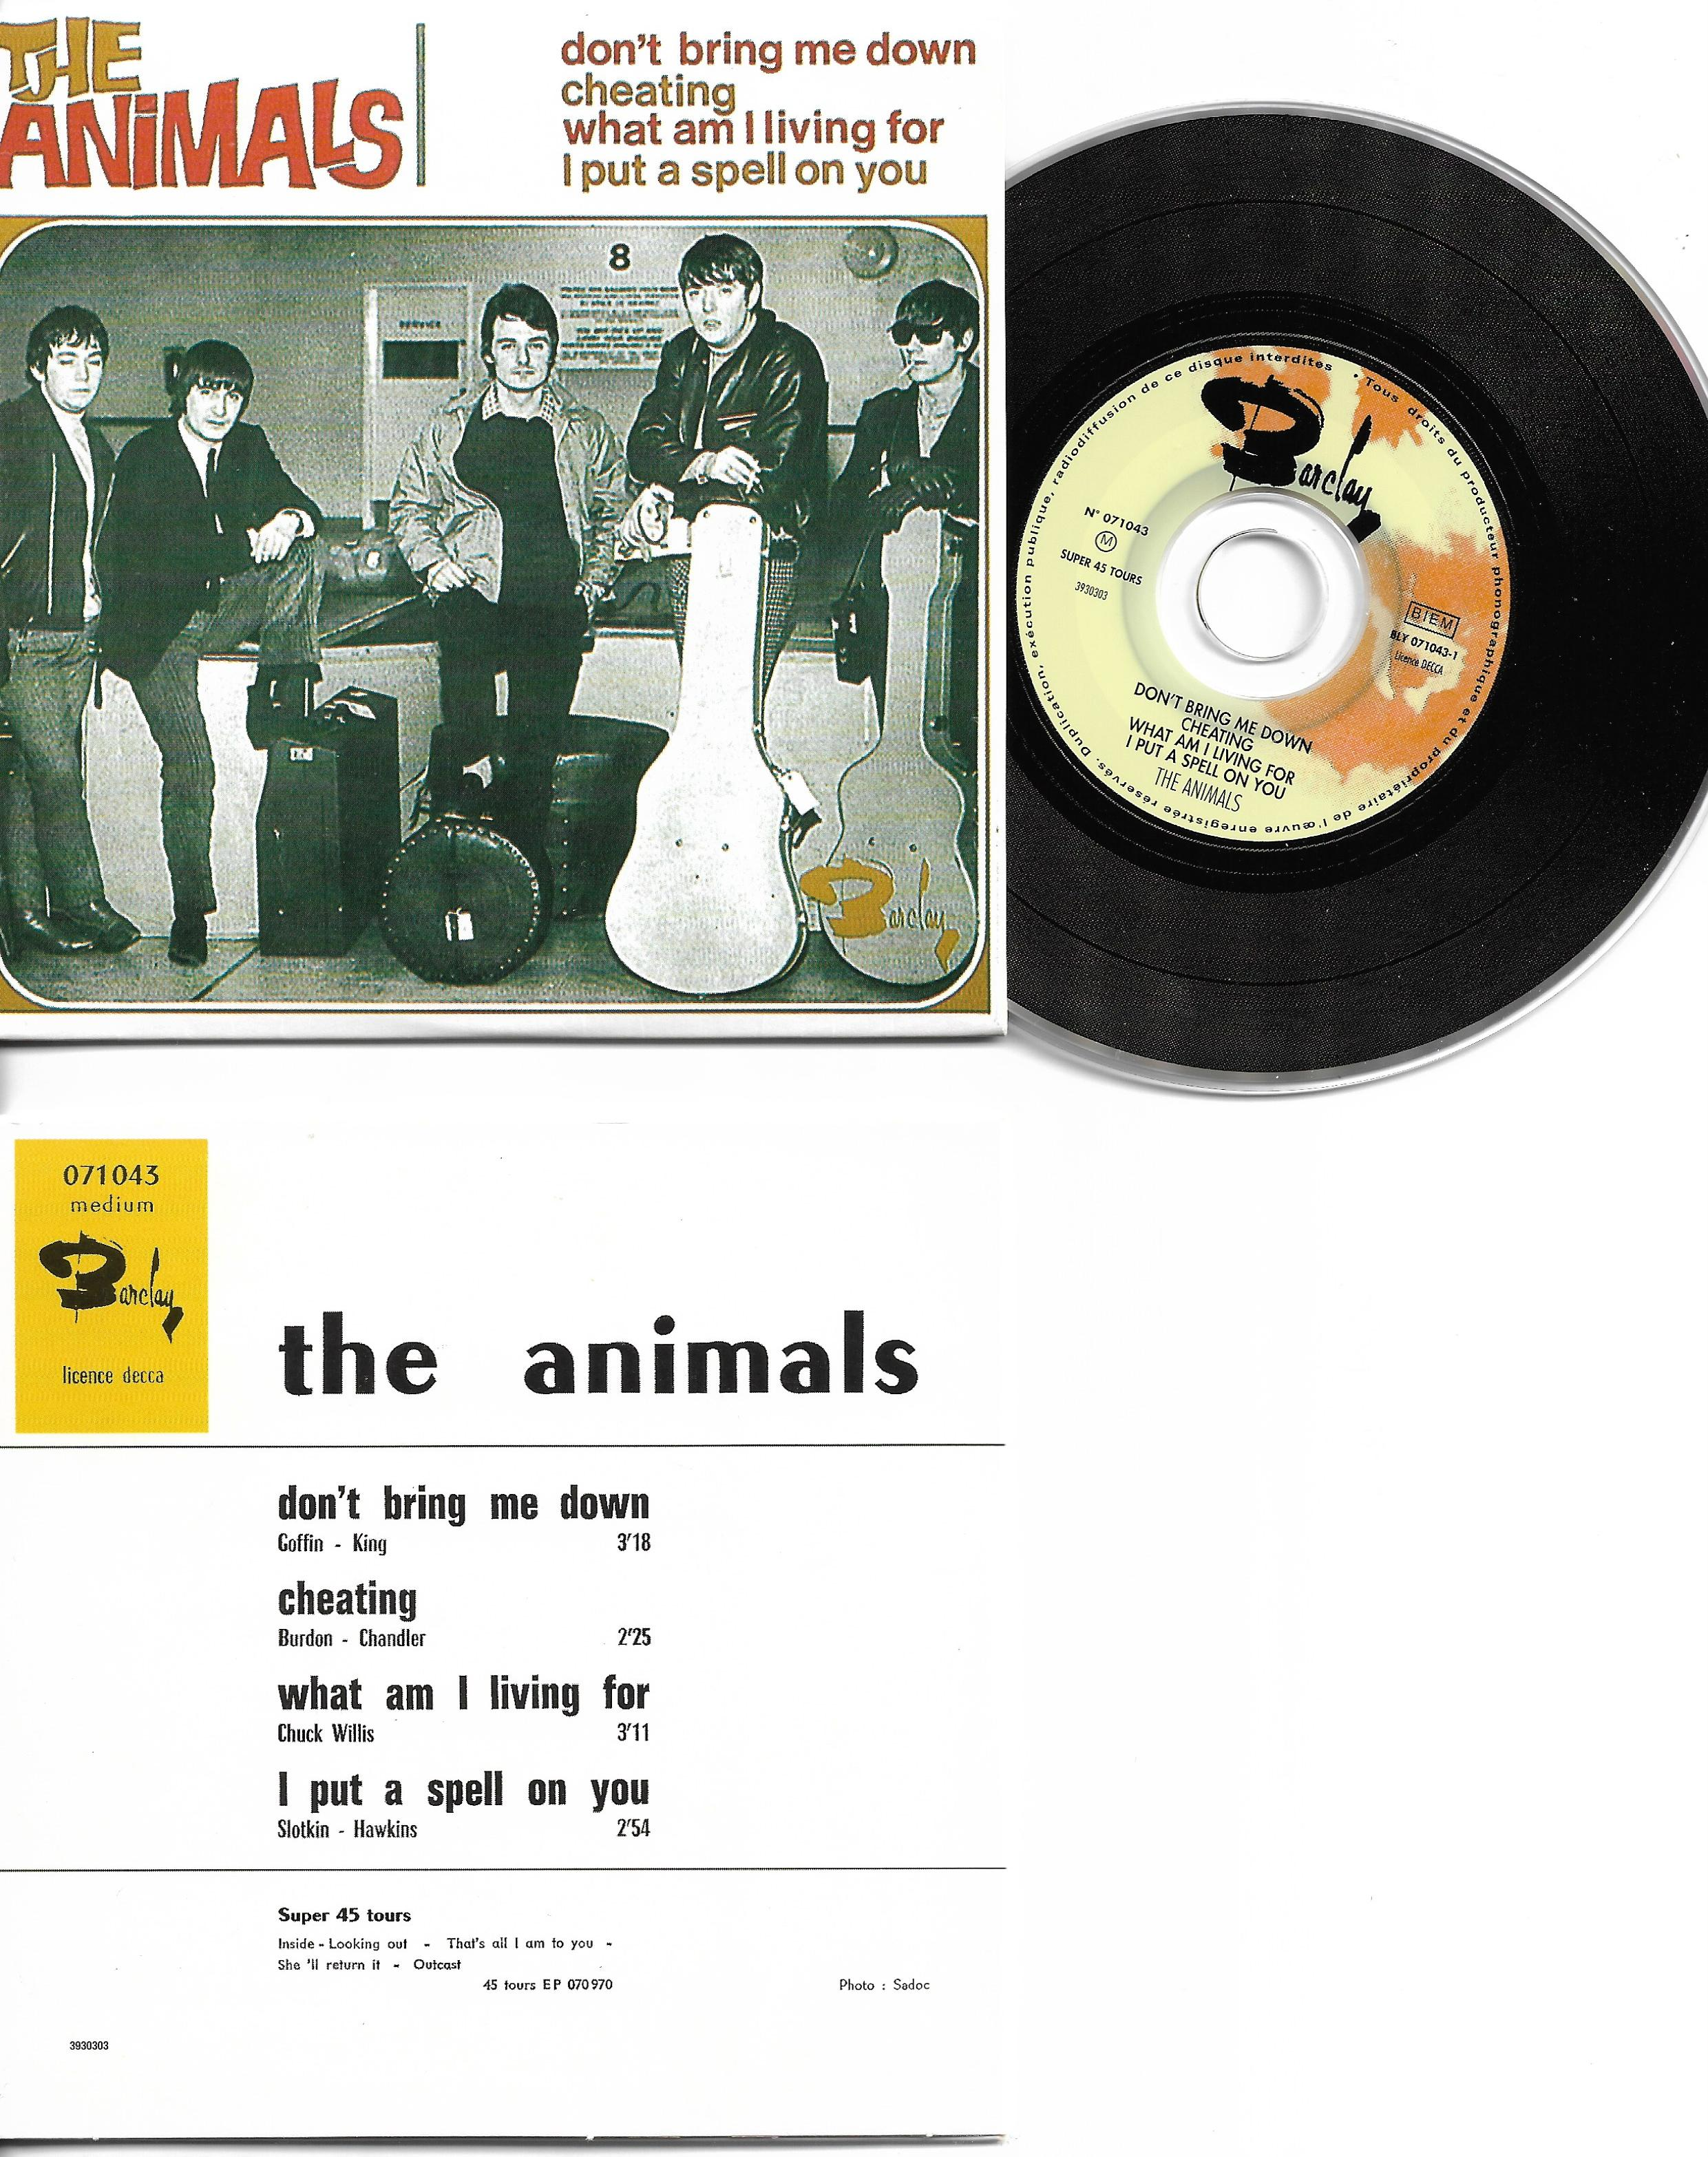 THE ANIMALS - Don't bring me down - EP - 4-track CARD SLEEVE - French sleeve - Very Limited Edition - CD single